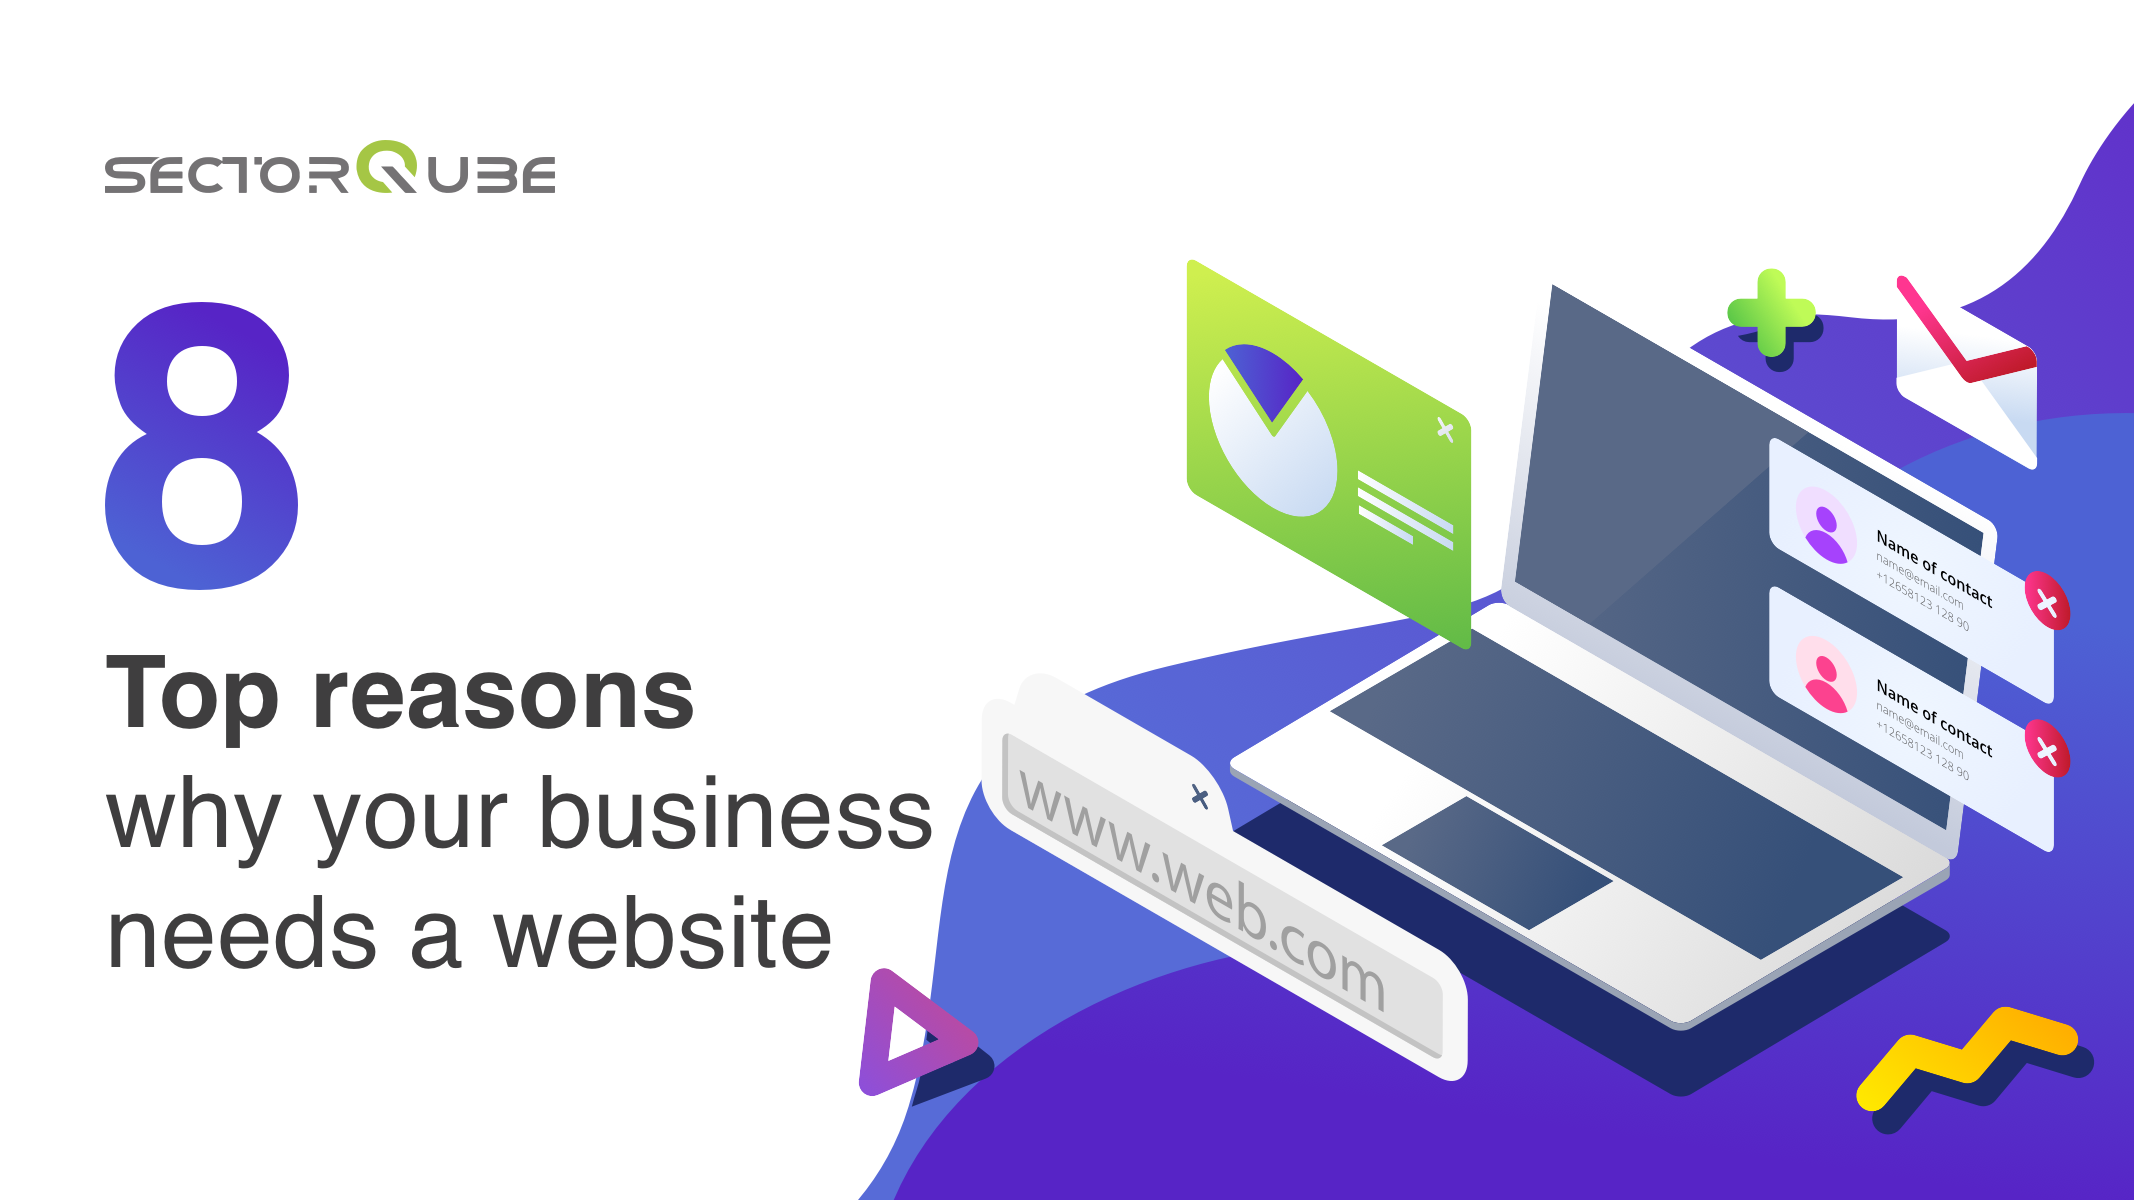 8 TOP REASONS WHY YOUR BUSINESS NEEDS A WEBSITE